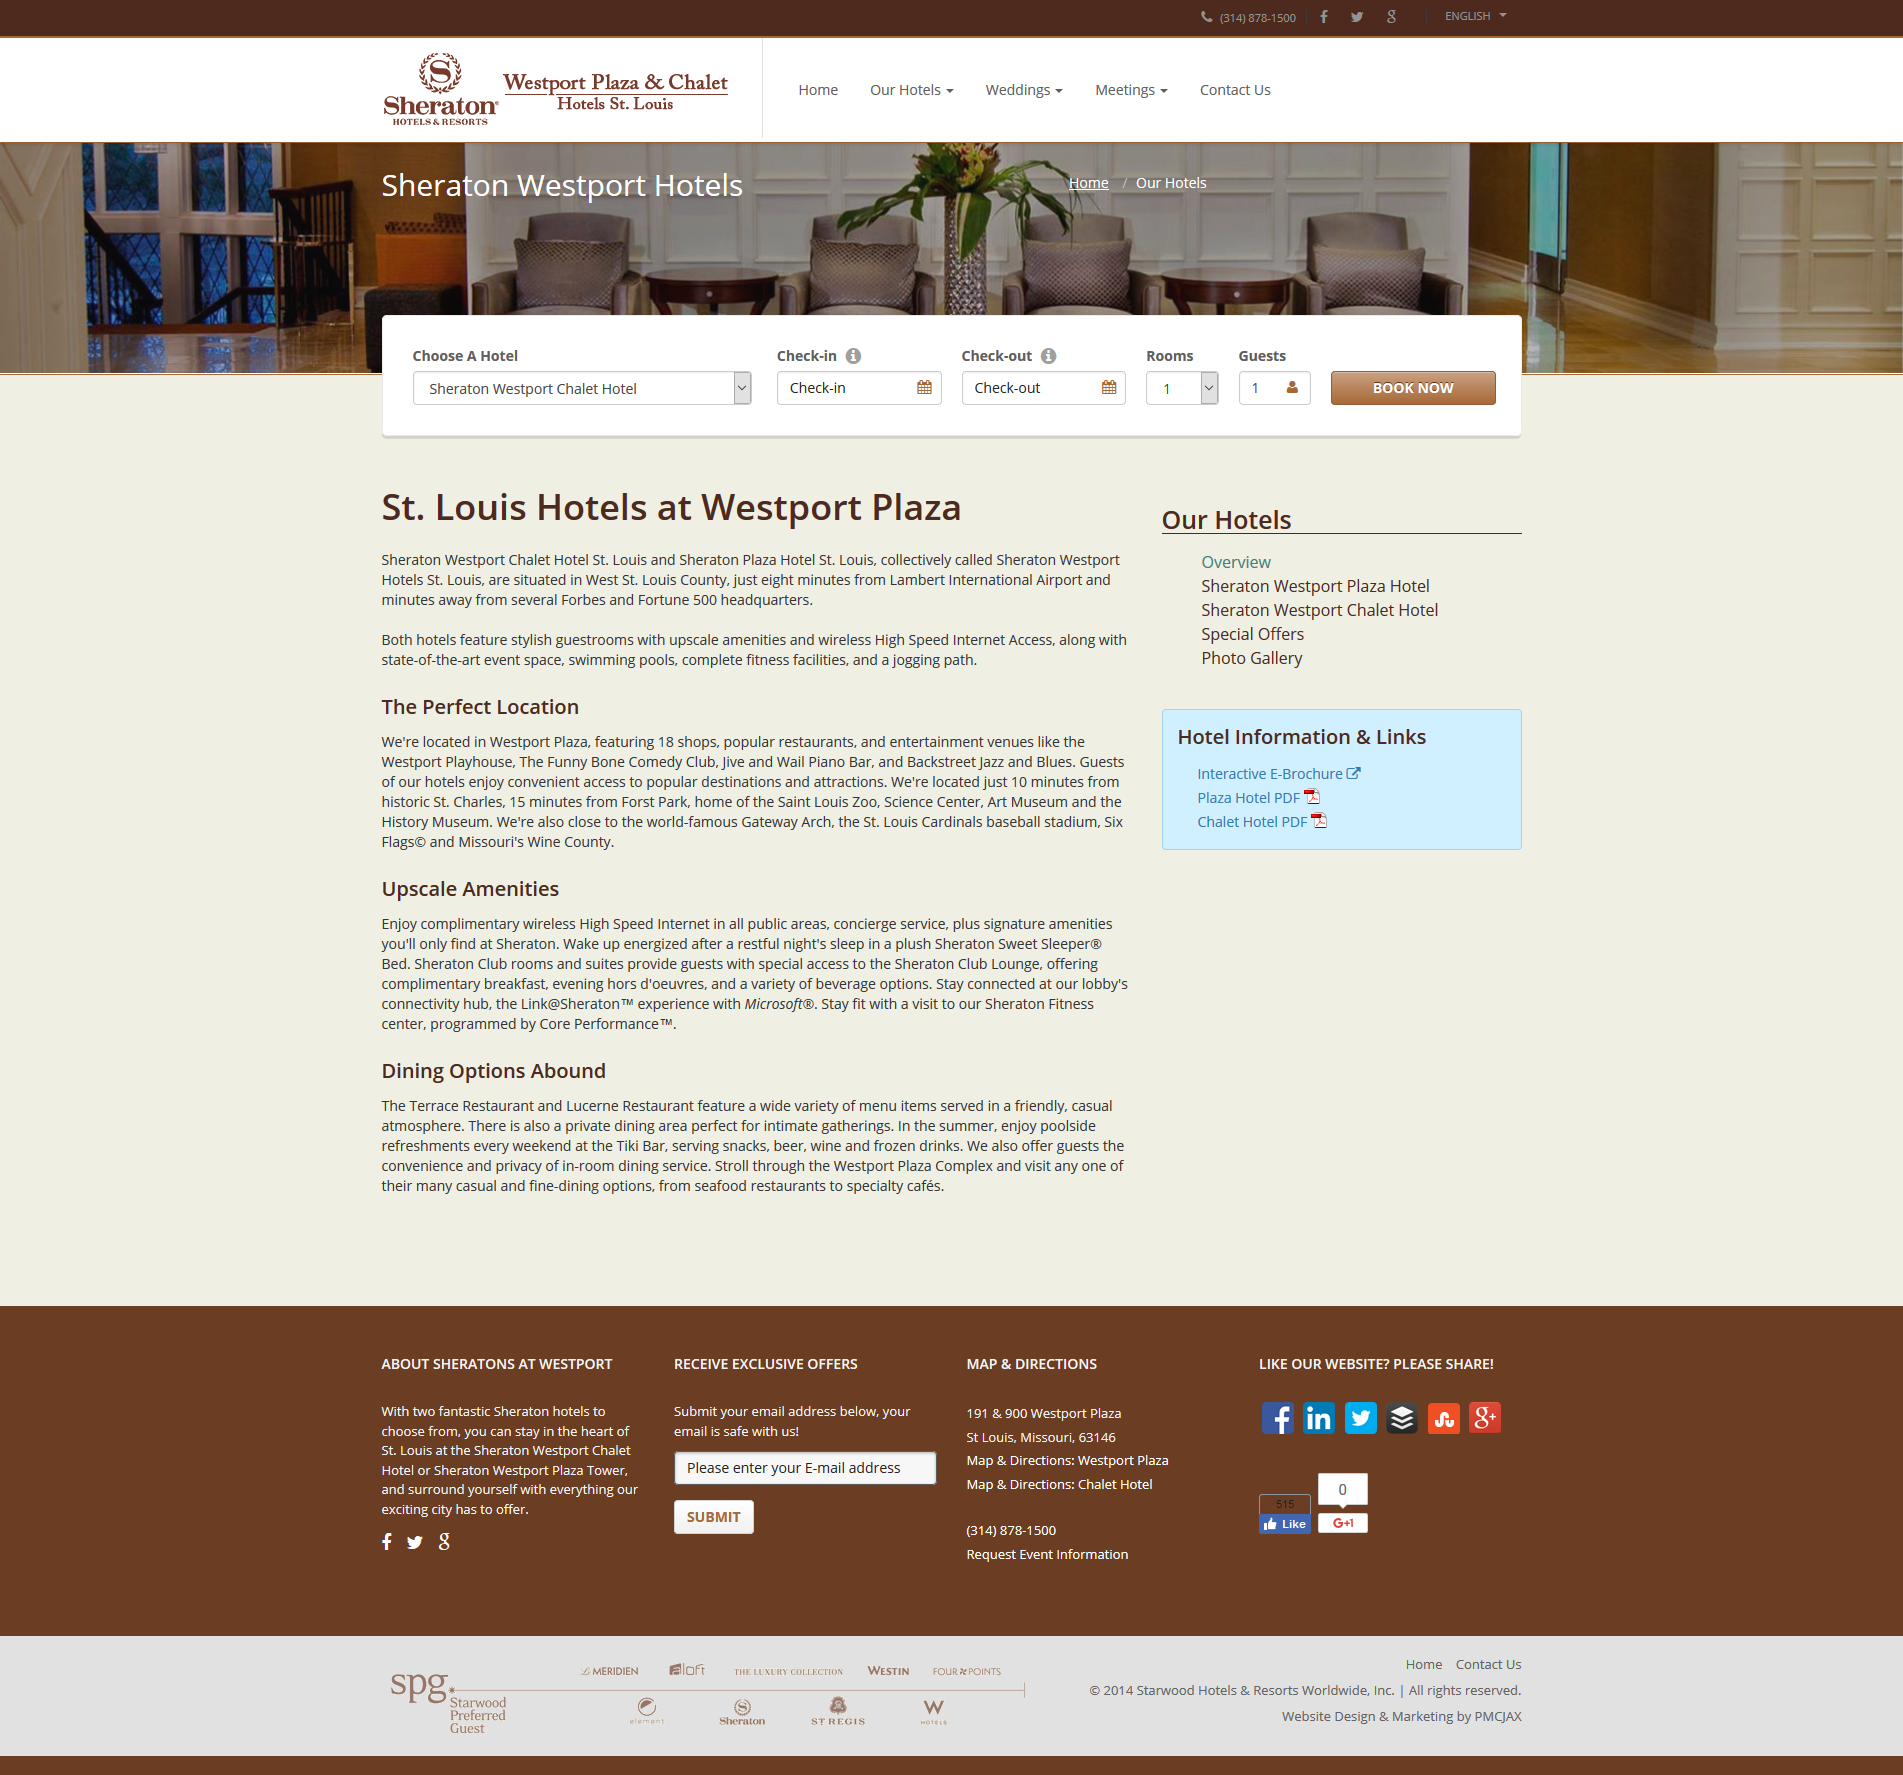 Custom Hotel Website Design - Hotel Overview